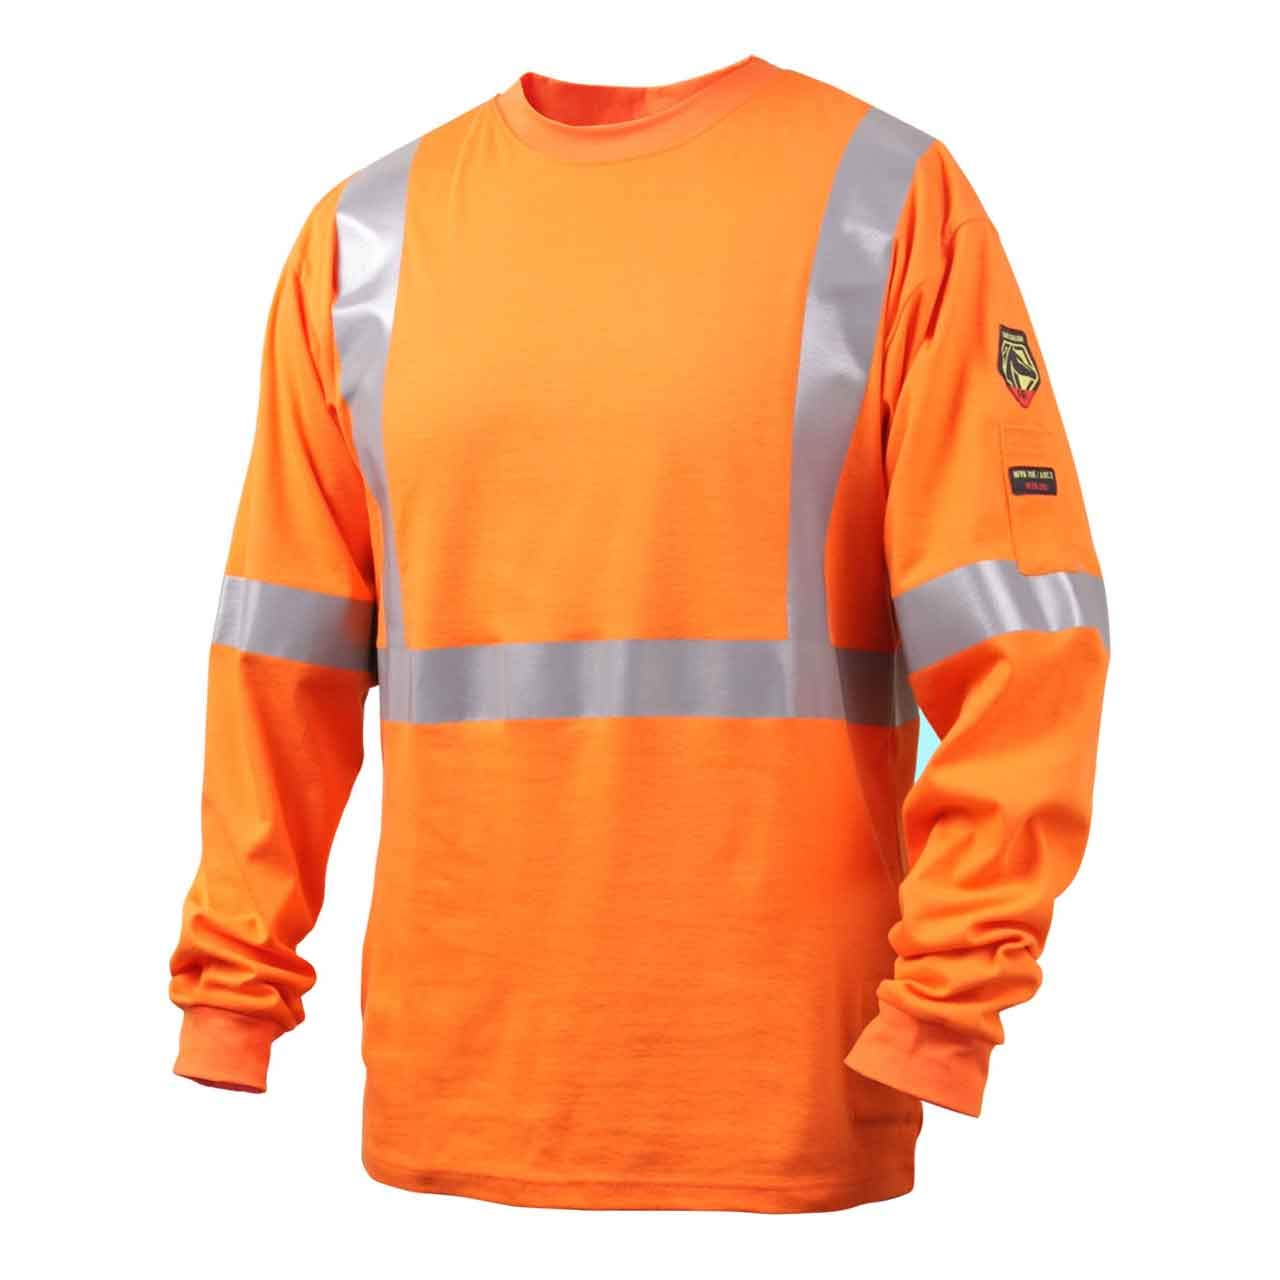 Black Stallion TF2511 NFPA 2112 & NFPA 70E FR Cotton Long Sleeve T-Shirt with Reflective Tape, Orange, Large